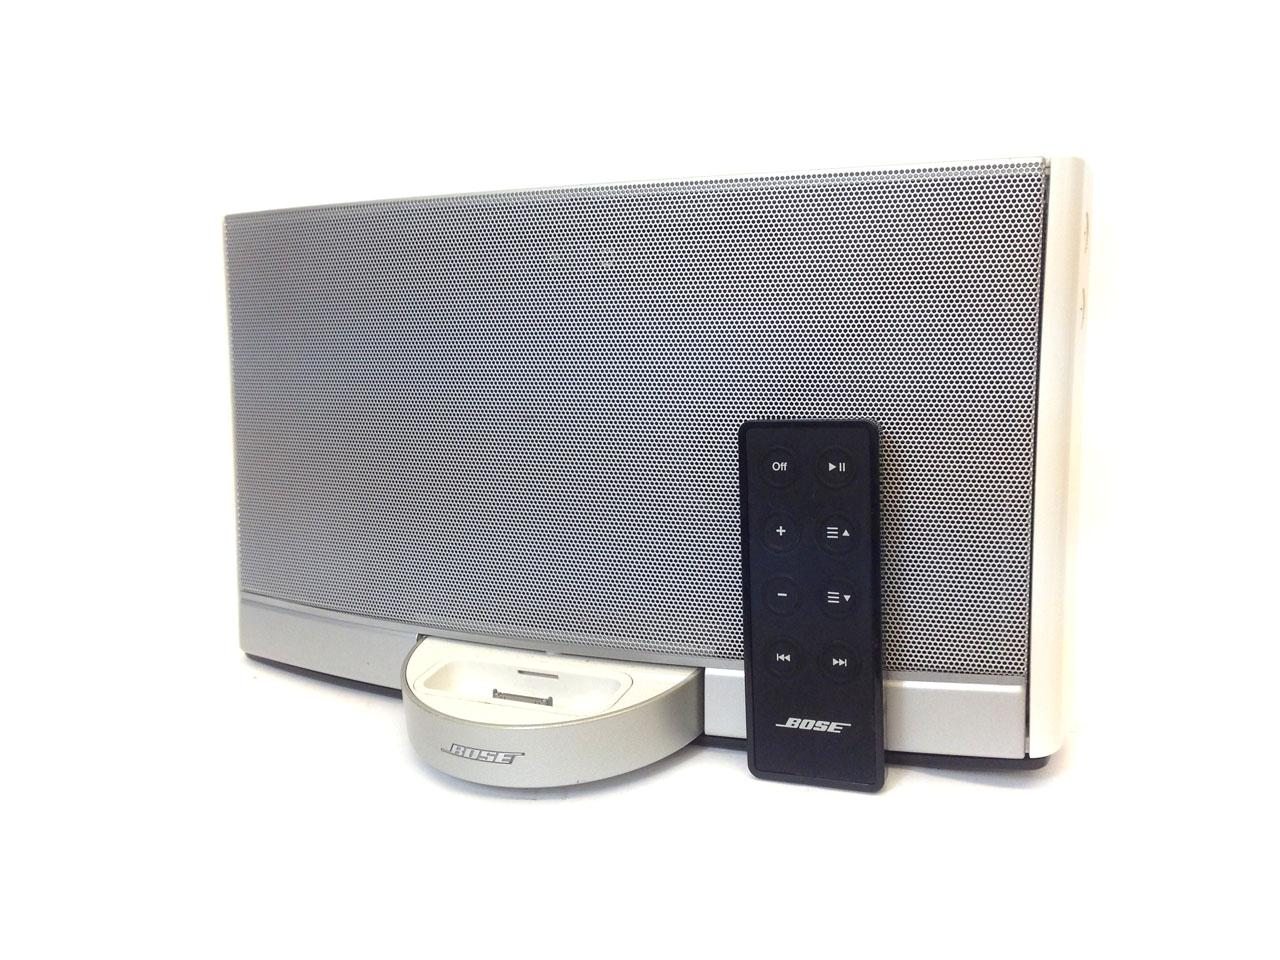 bose sound dock ipod iphone portable speaker white ebay. Black Bedroom Furniture Sets. Home Design Ideas